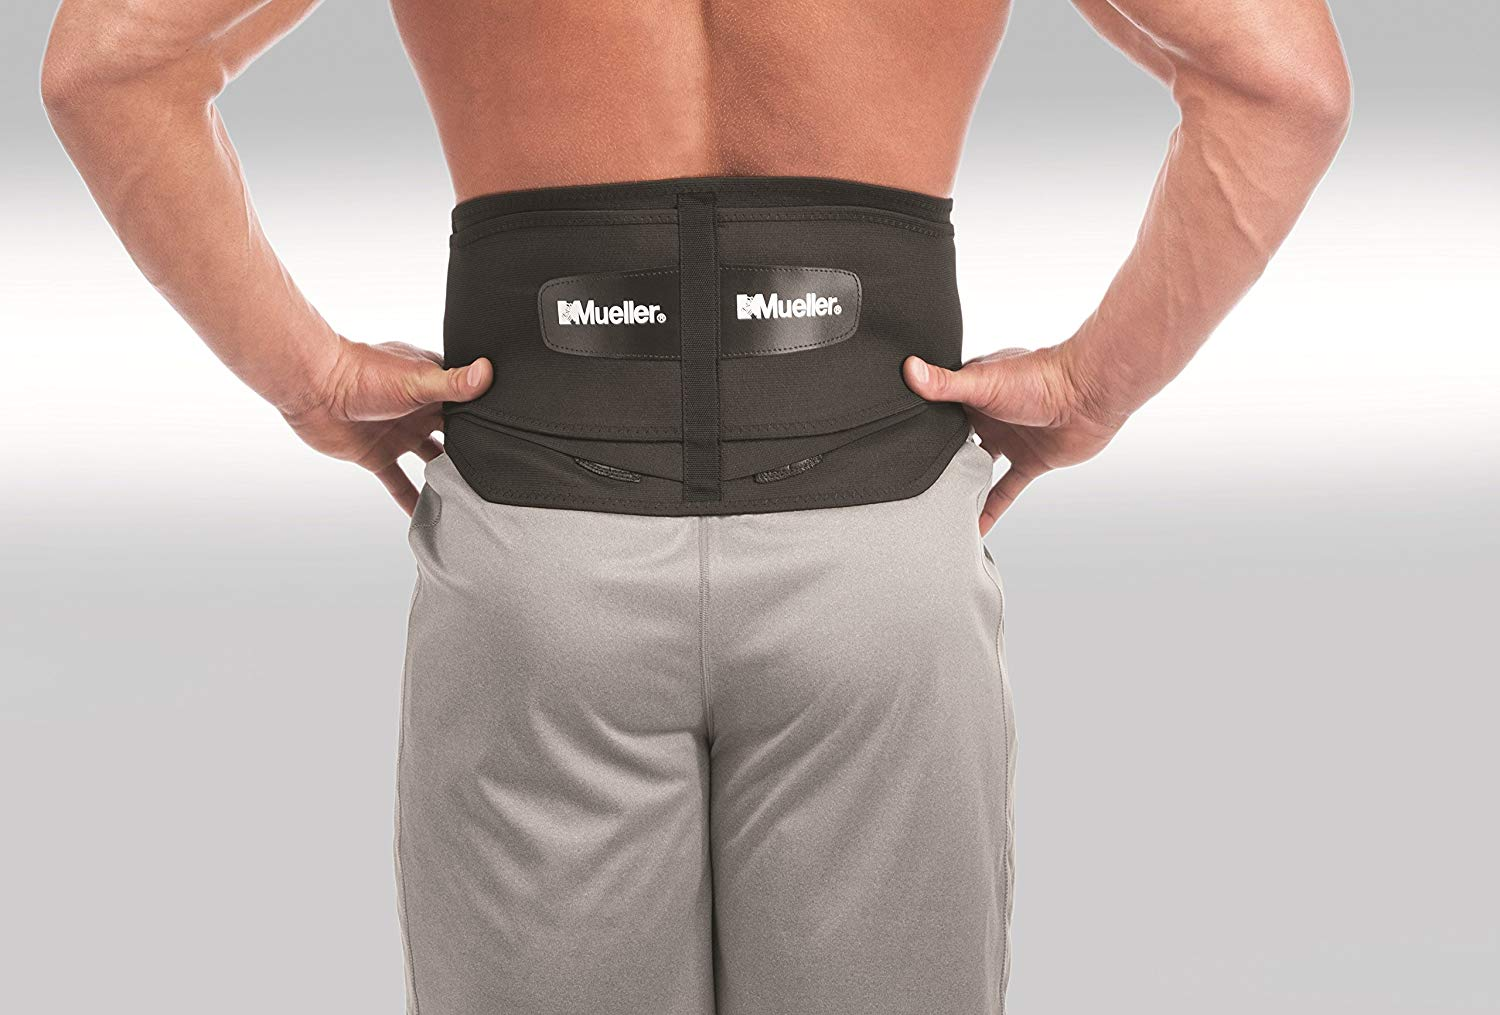 The Mueller copper belt for back pain